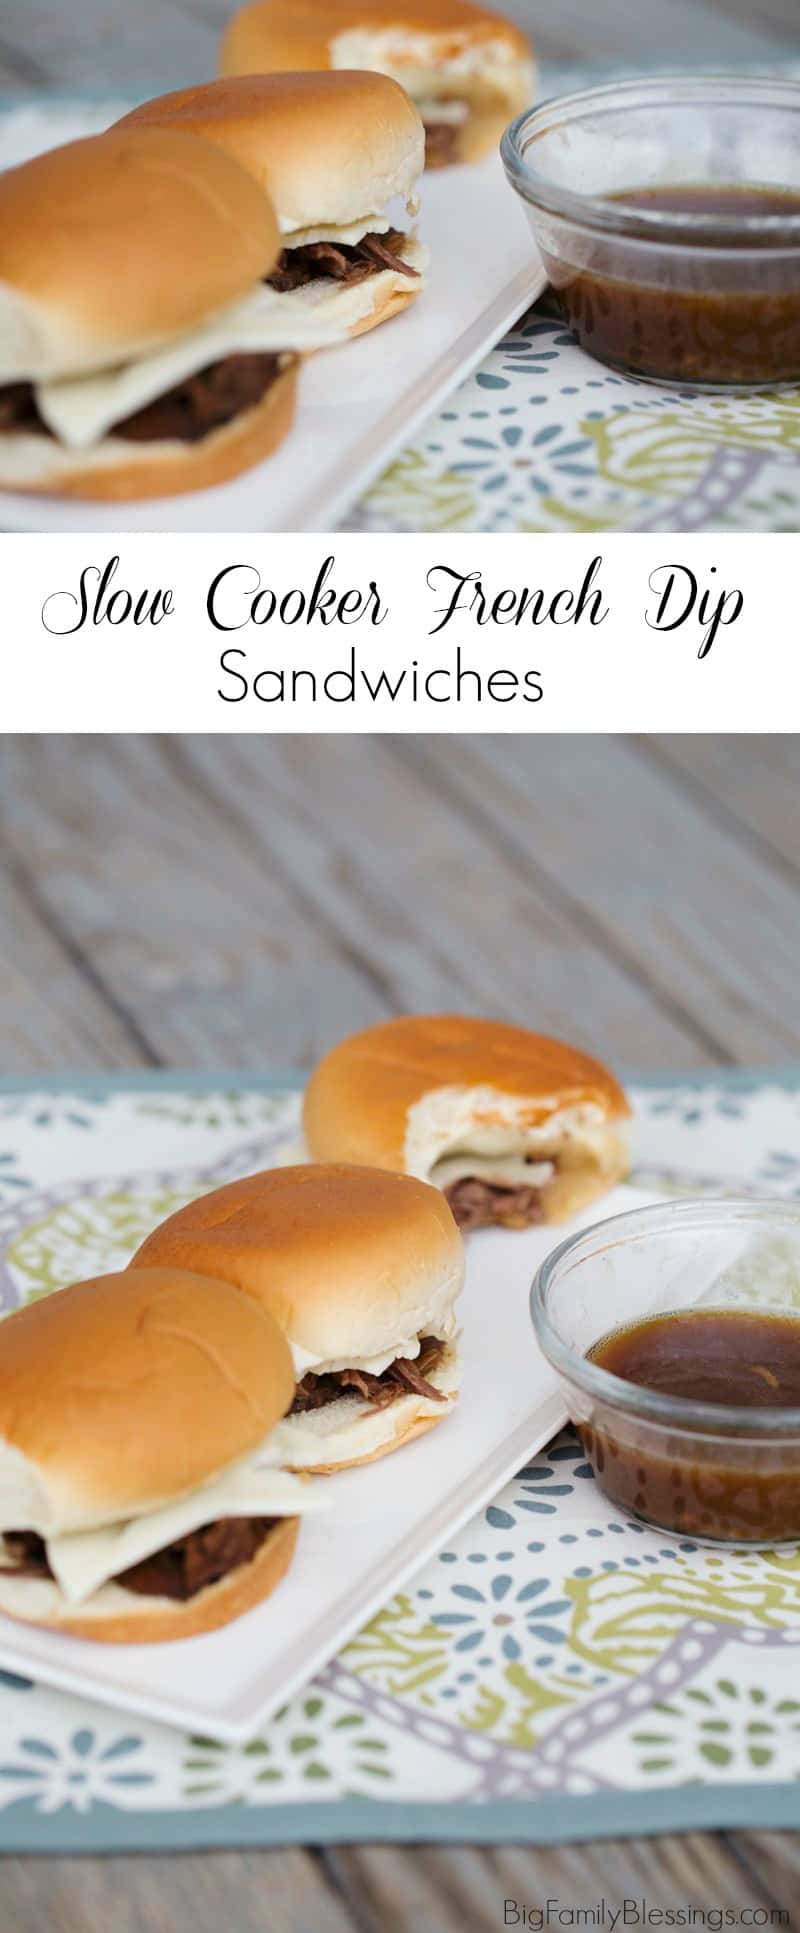 Slow Cooker French Dip Sandwiches. Perfect easy, hearty meal for a cold day.